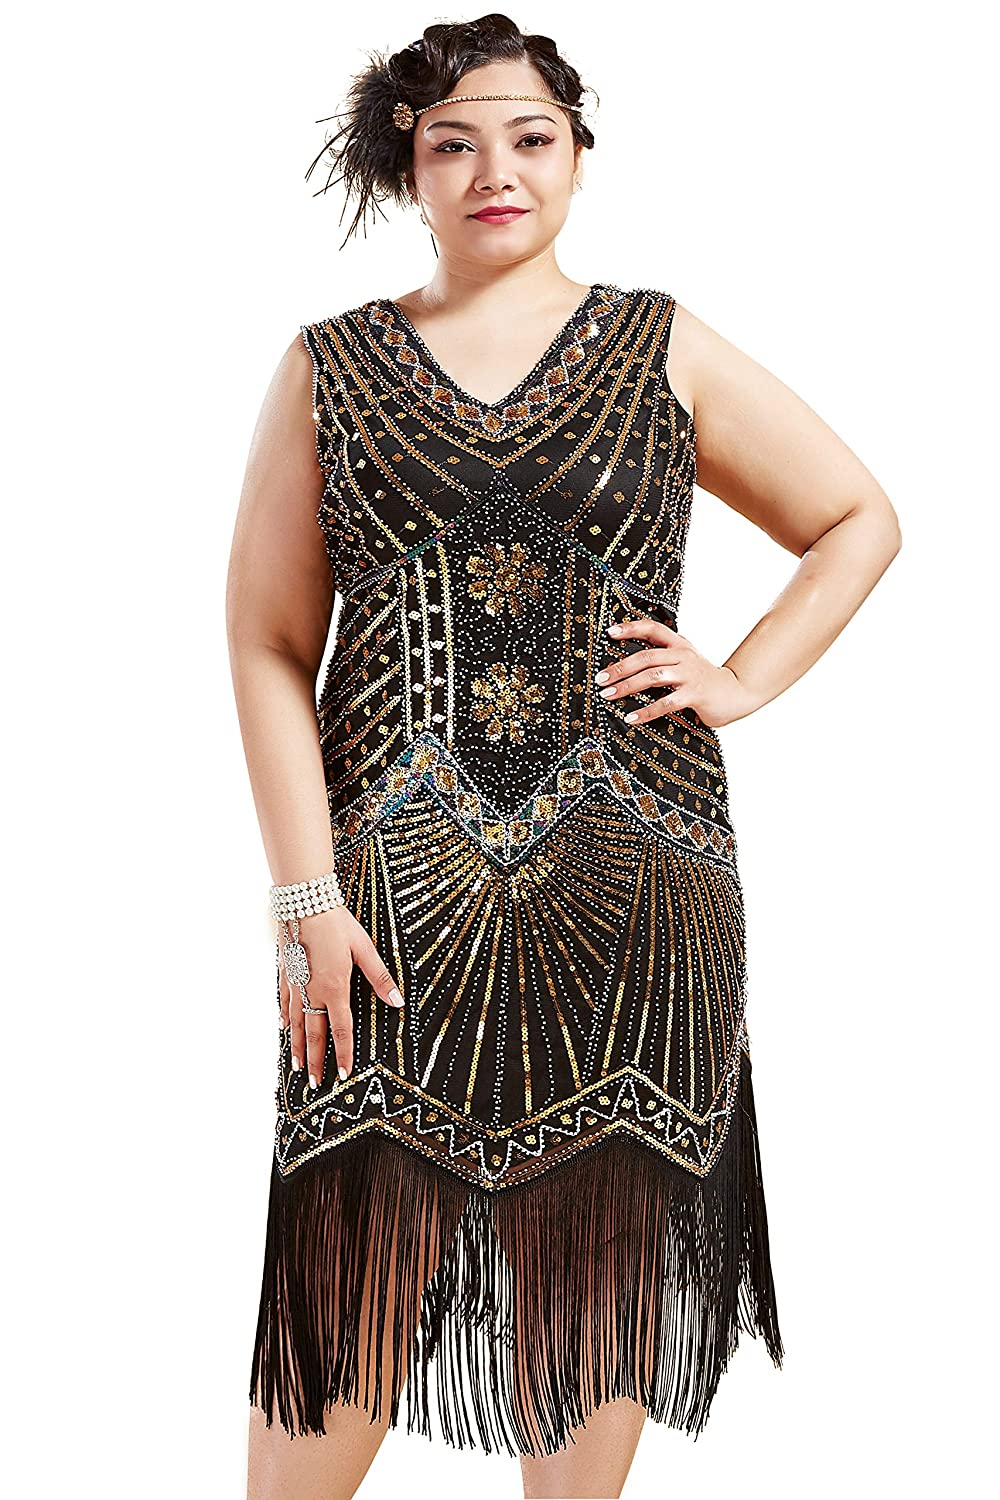 Great Gatsby Dress – Great Gatsby Dresses for Sale BABEYOND Womens Plus Size Flapper Dresses 1920s V Neck Beaded Fringed Great Gatsby Dress $45.99 AT vintagedancer.com